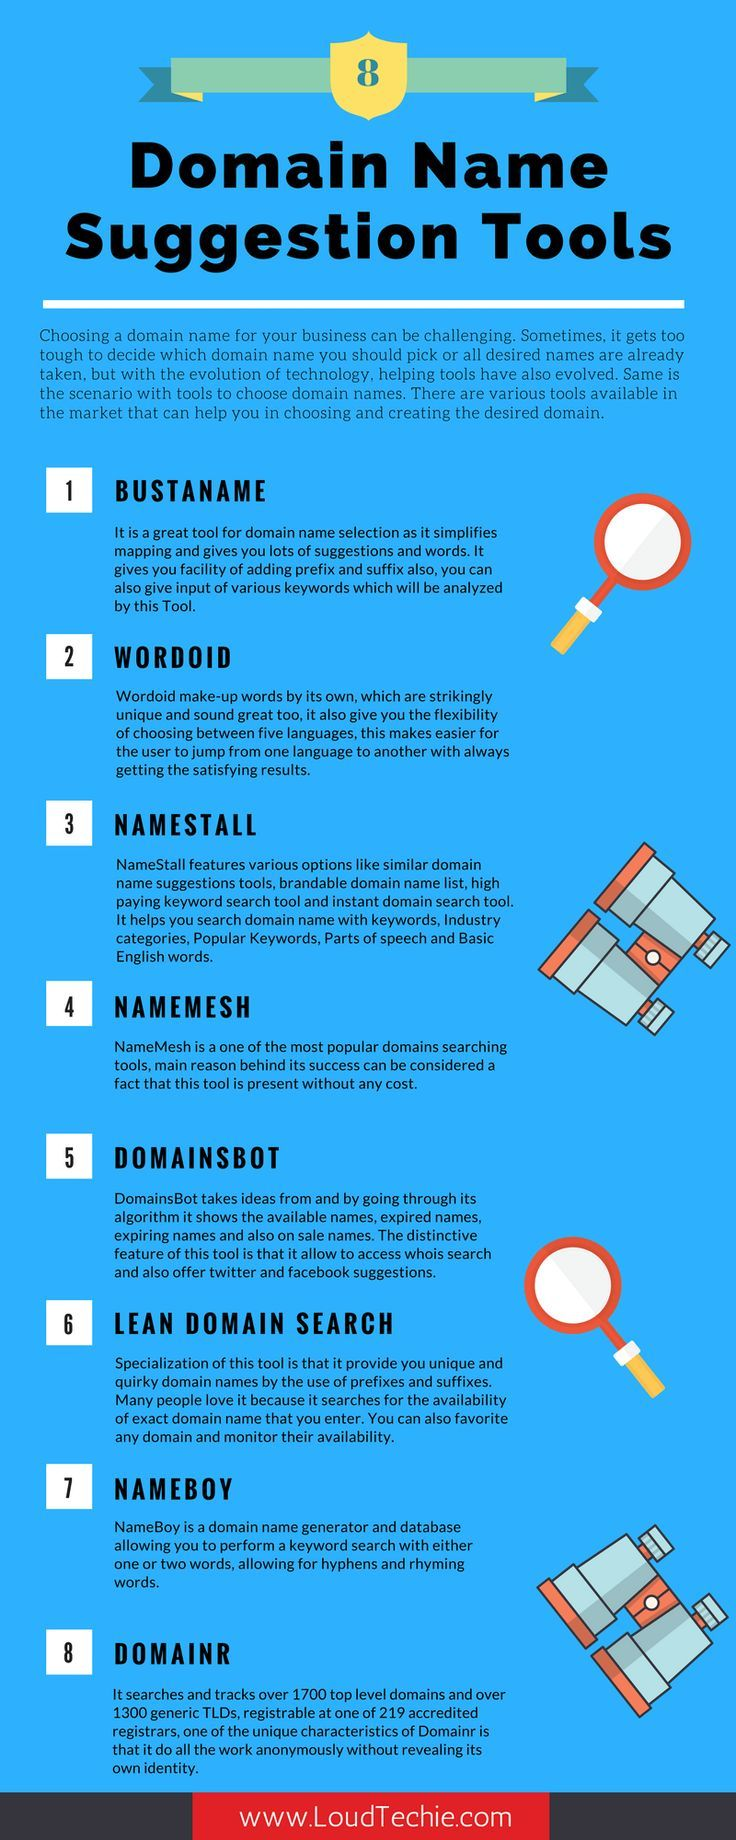 Science Worksheets For Grade 7 Best  Names For Business Ideas On Pinterest  Startup Business  Proportion Worksheet Excel with Multiply Polynomials Worksheet Word  Tools To Lookup Perfect Domain Name Suggestion For Your New Domain Physiology Worksheets Excel